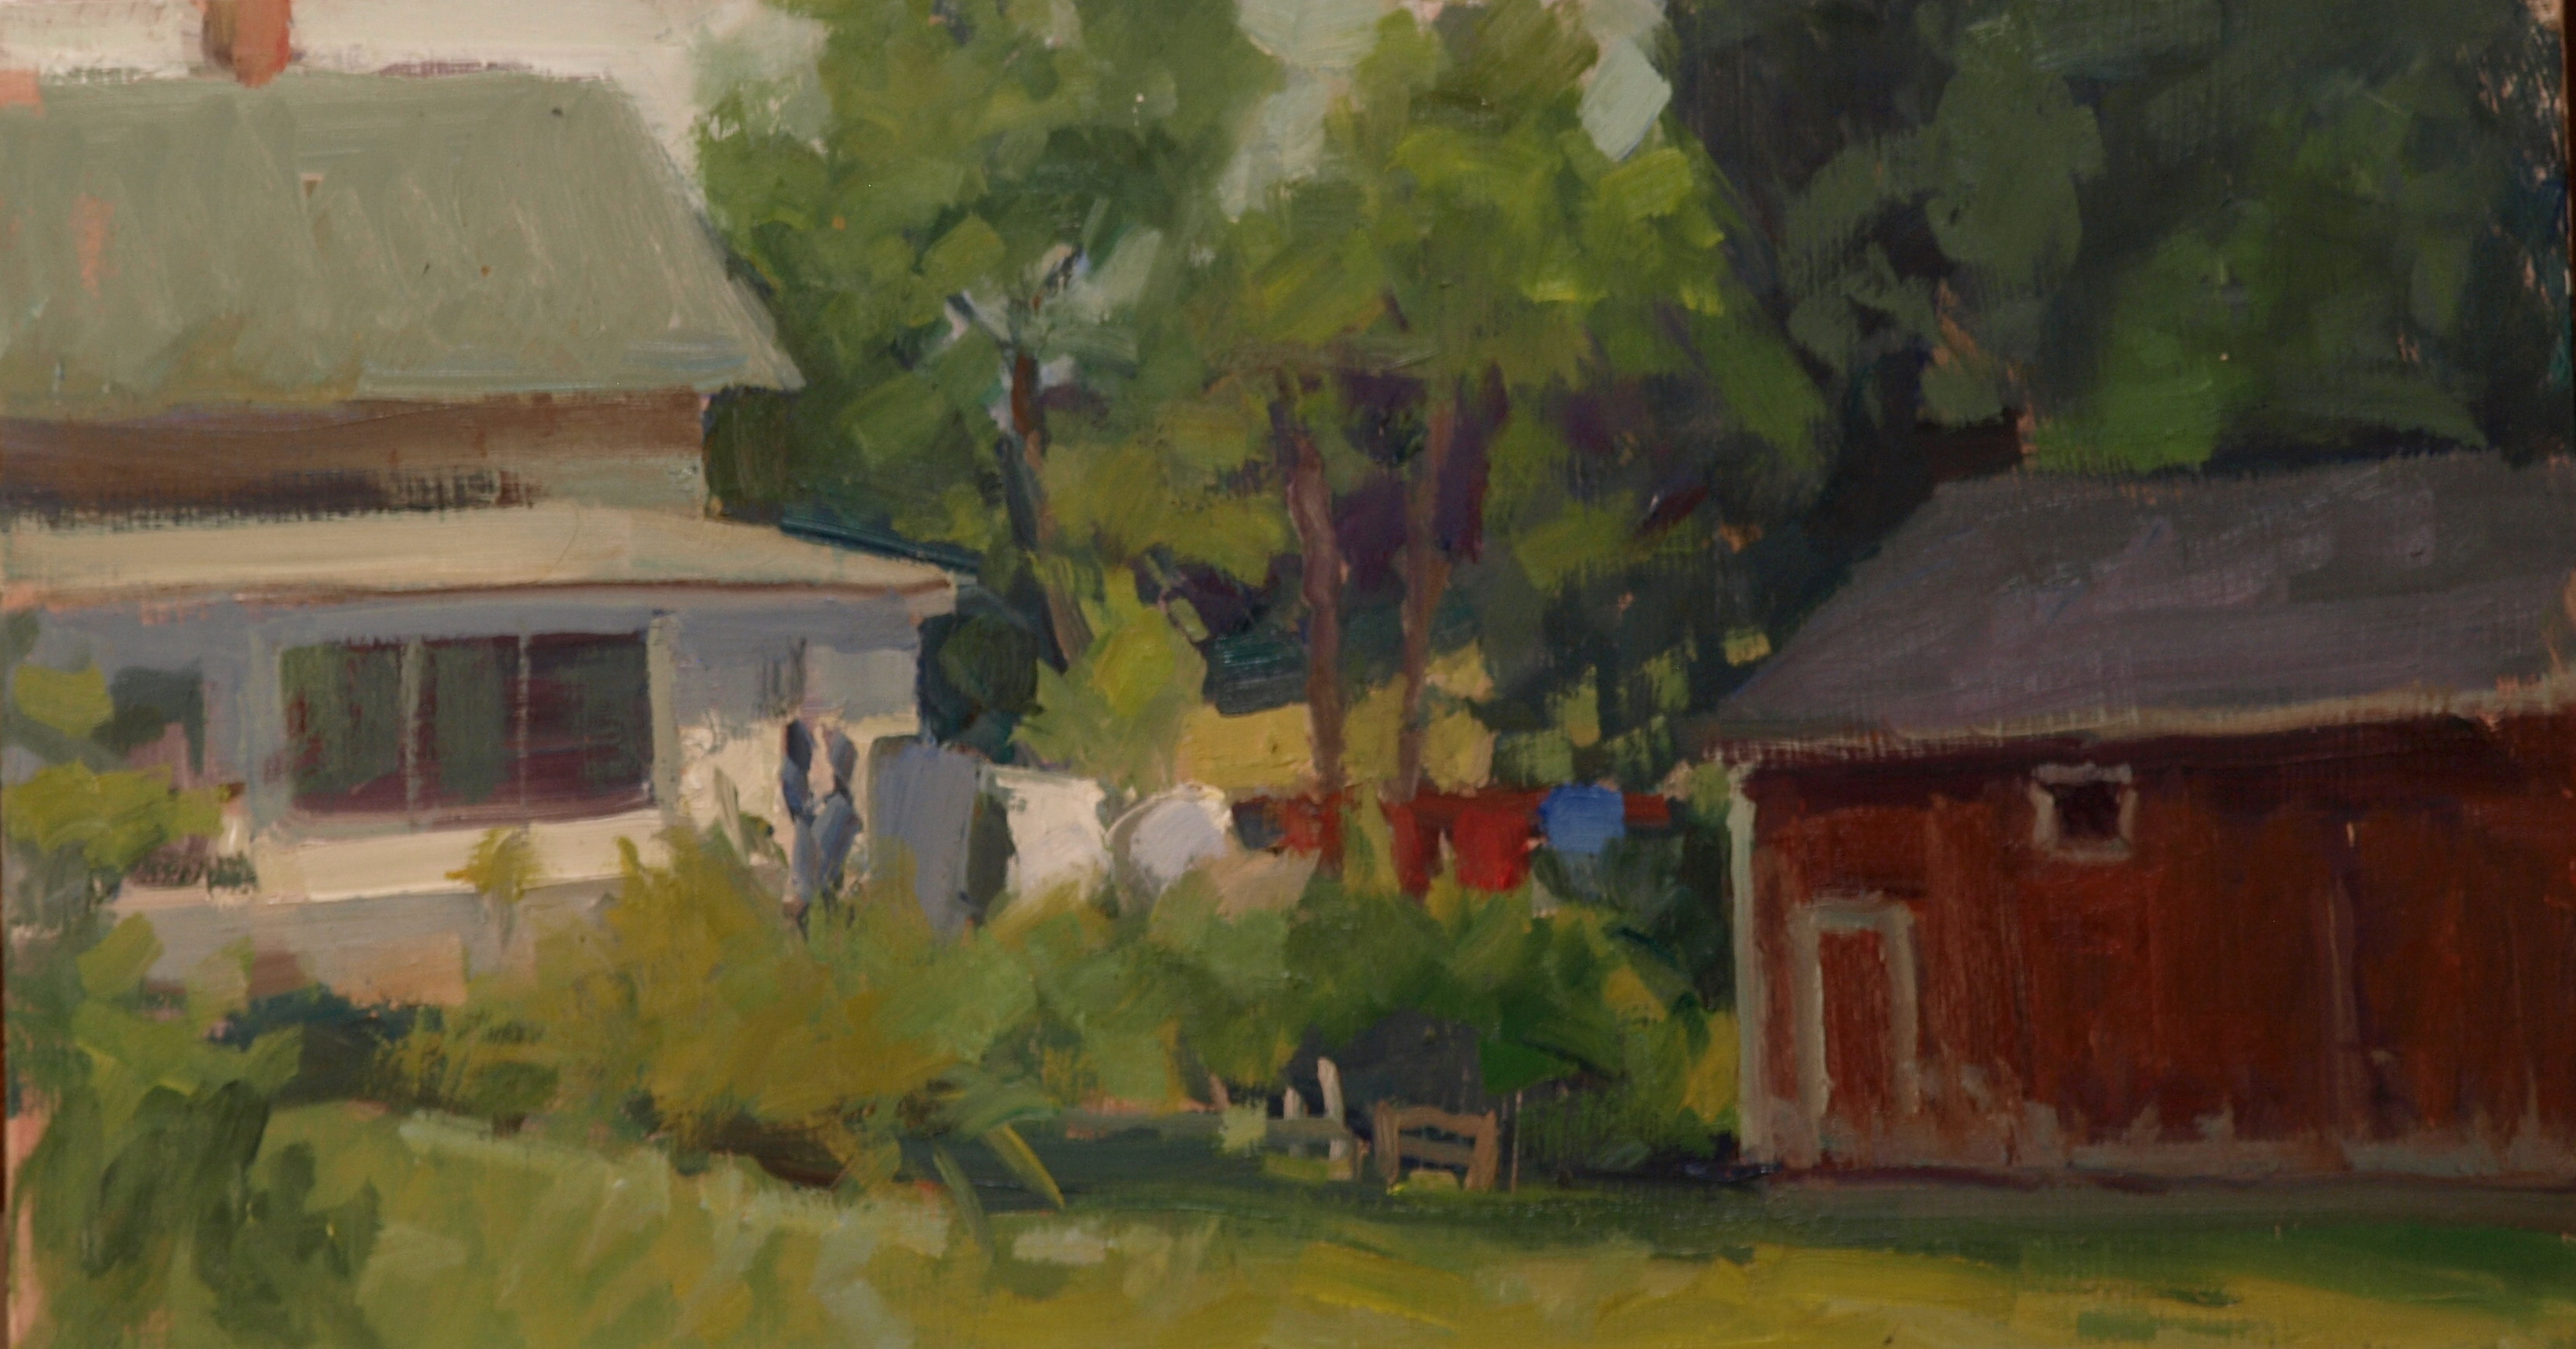 Washing Day, Oil on Panel, 9 x 16 Inches, by Susan Grisell, $300